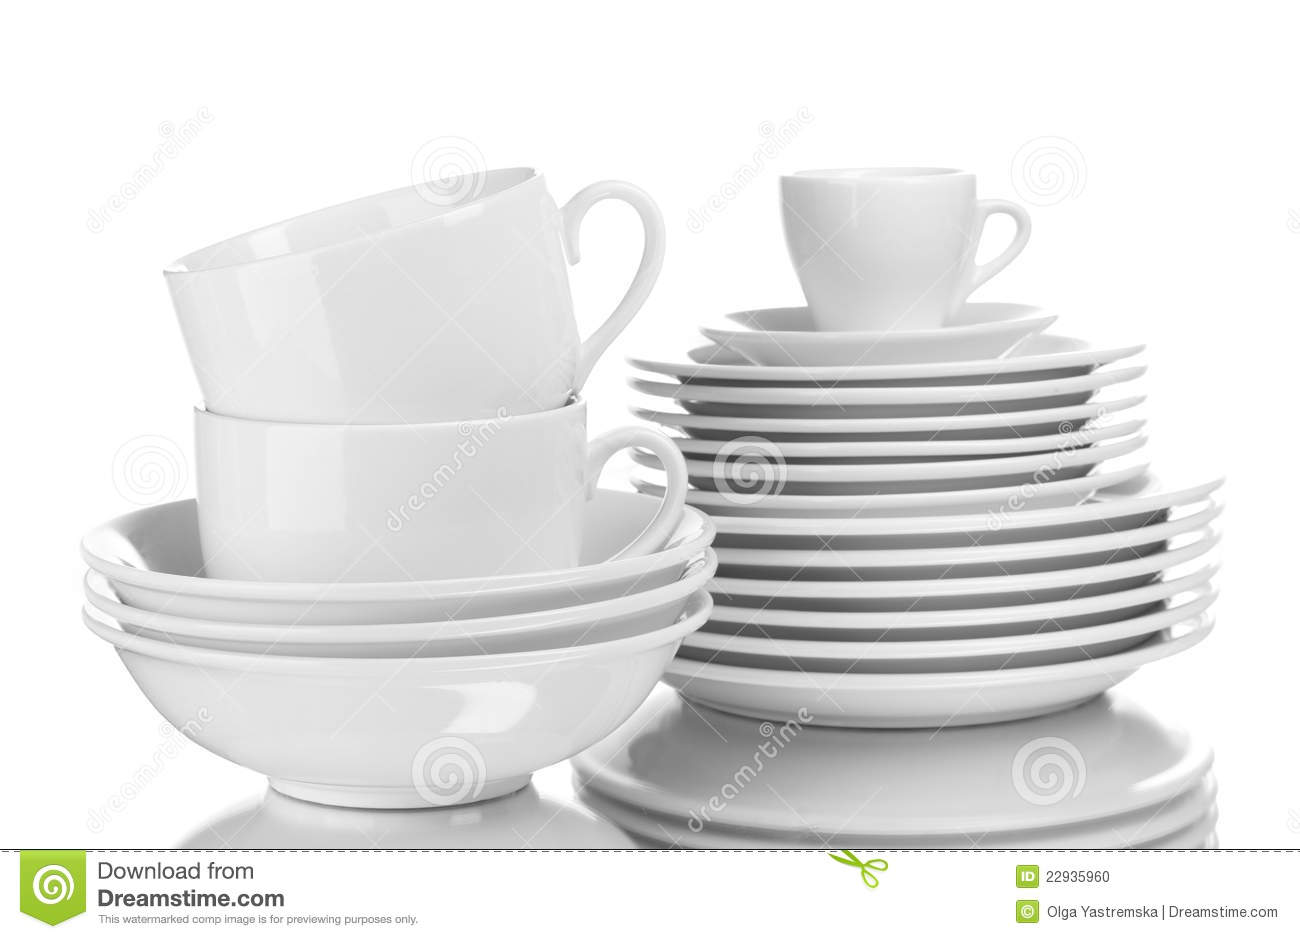 Clean plates and cups stock photo Image of dinnerware  : clean plates cups 22935960 from dreamstime.com size 1300 x 939 jpeg 69kB